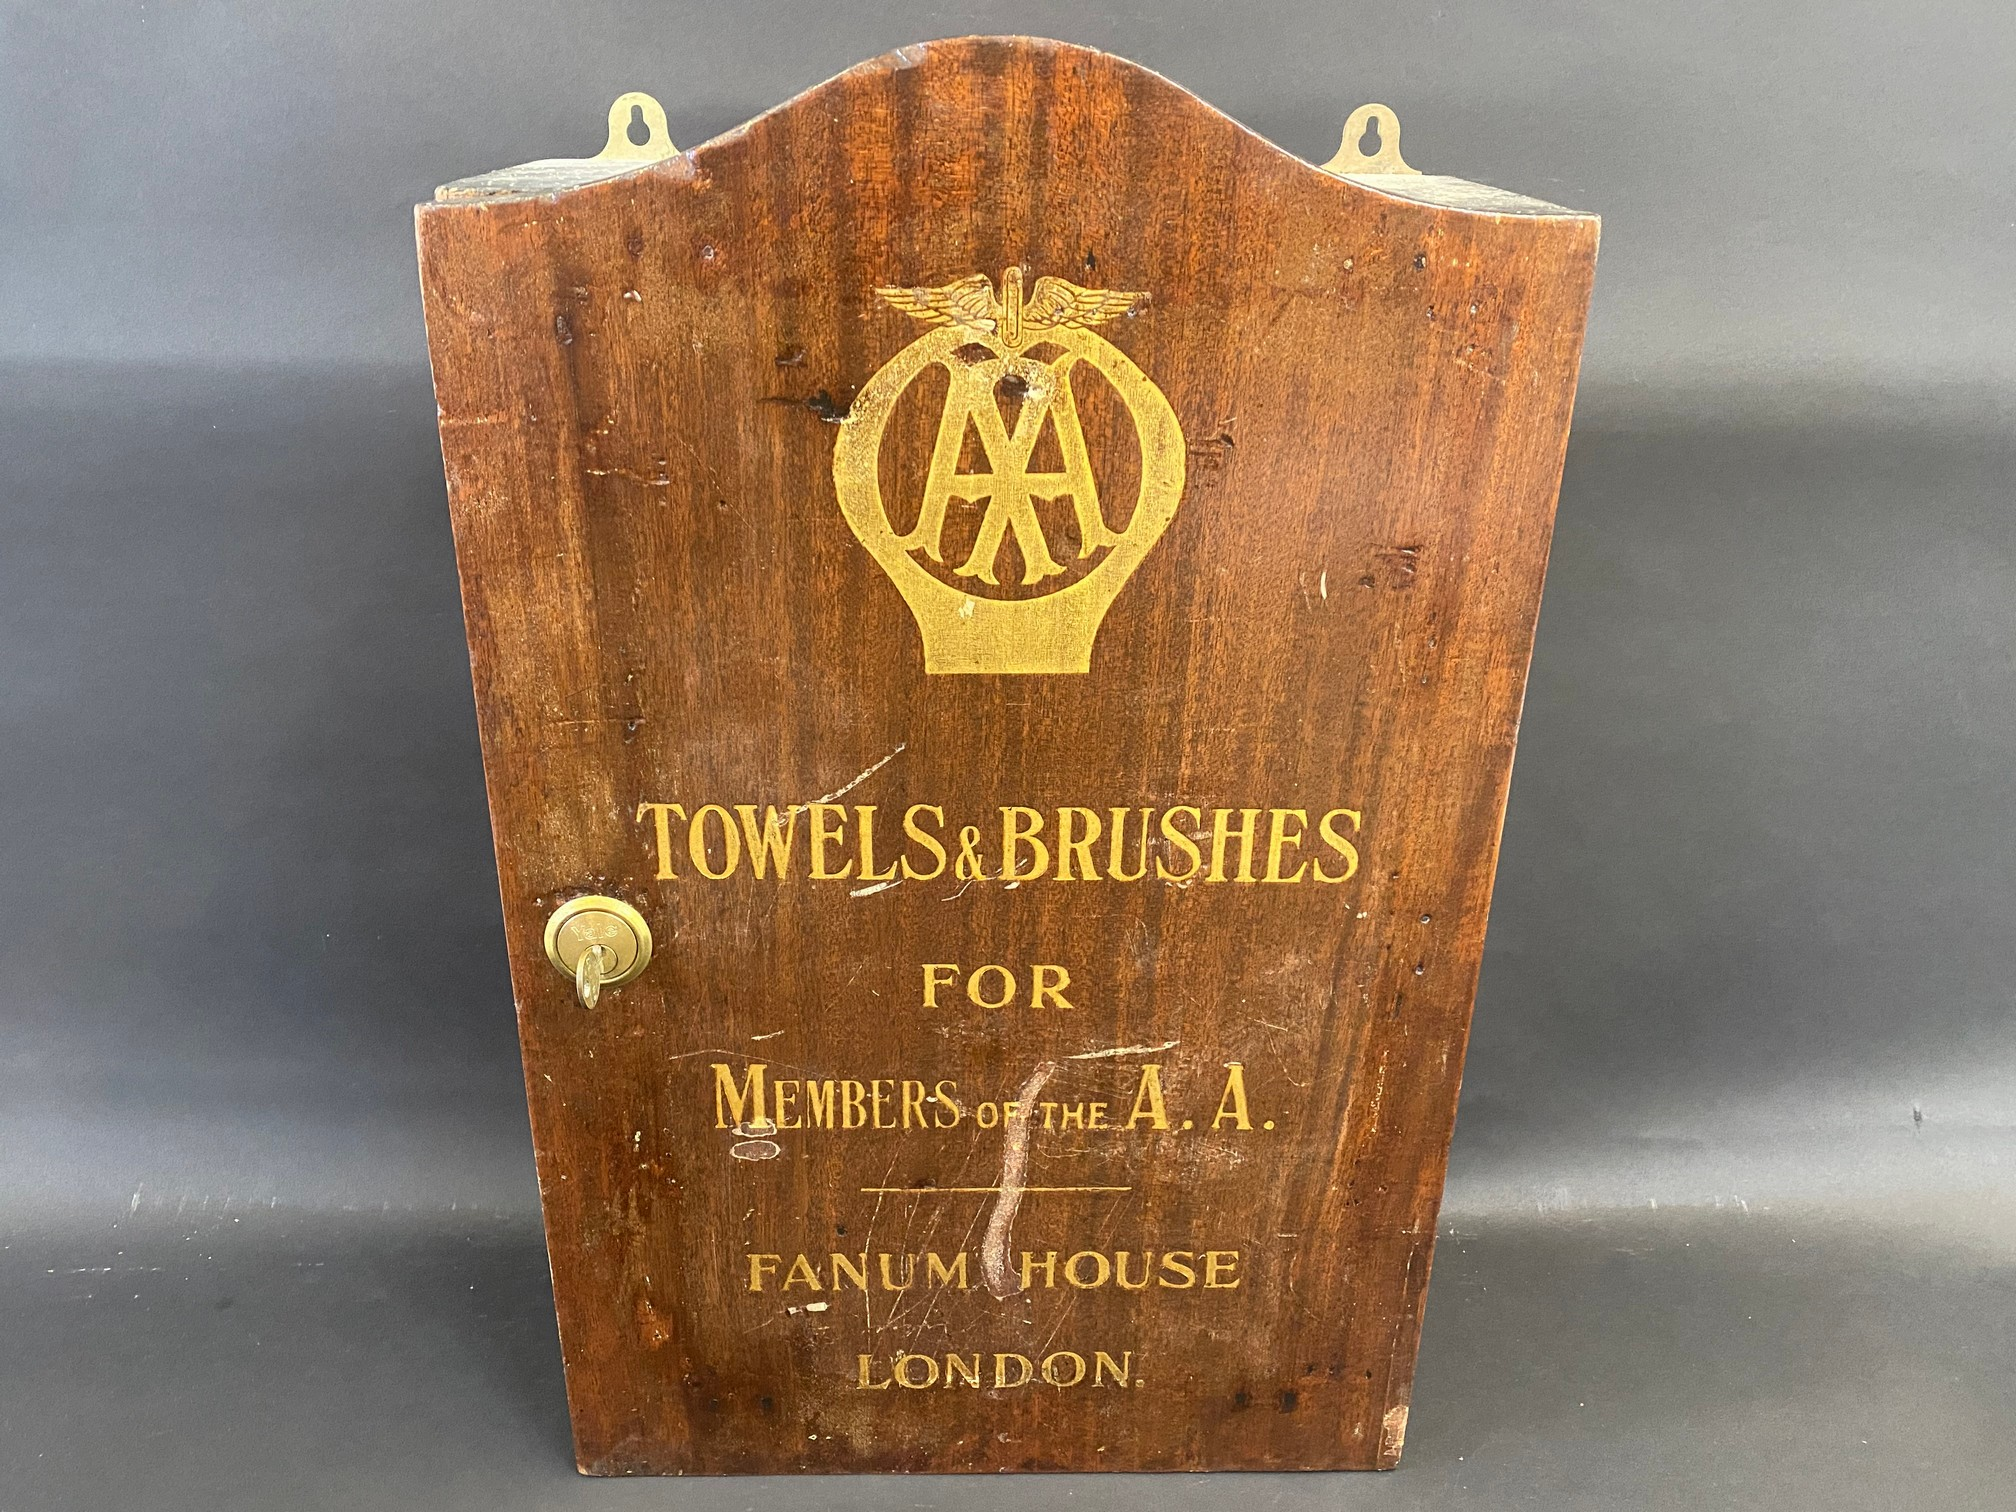 A rarely seen AA wall hanging cupboard containing 'Towels & Brushes for Members of the AA', Fanum